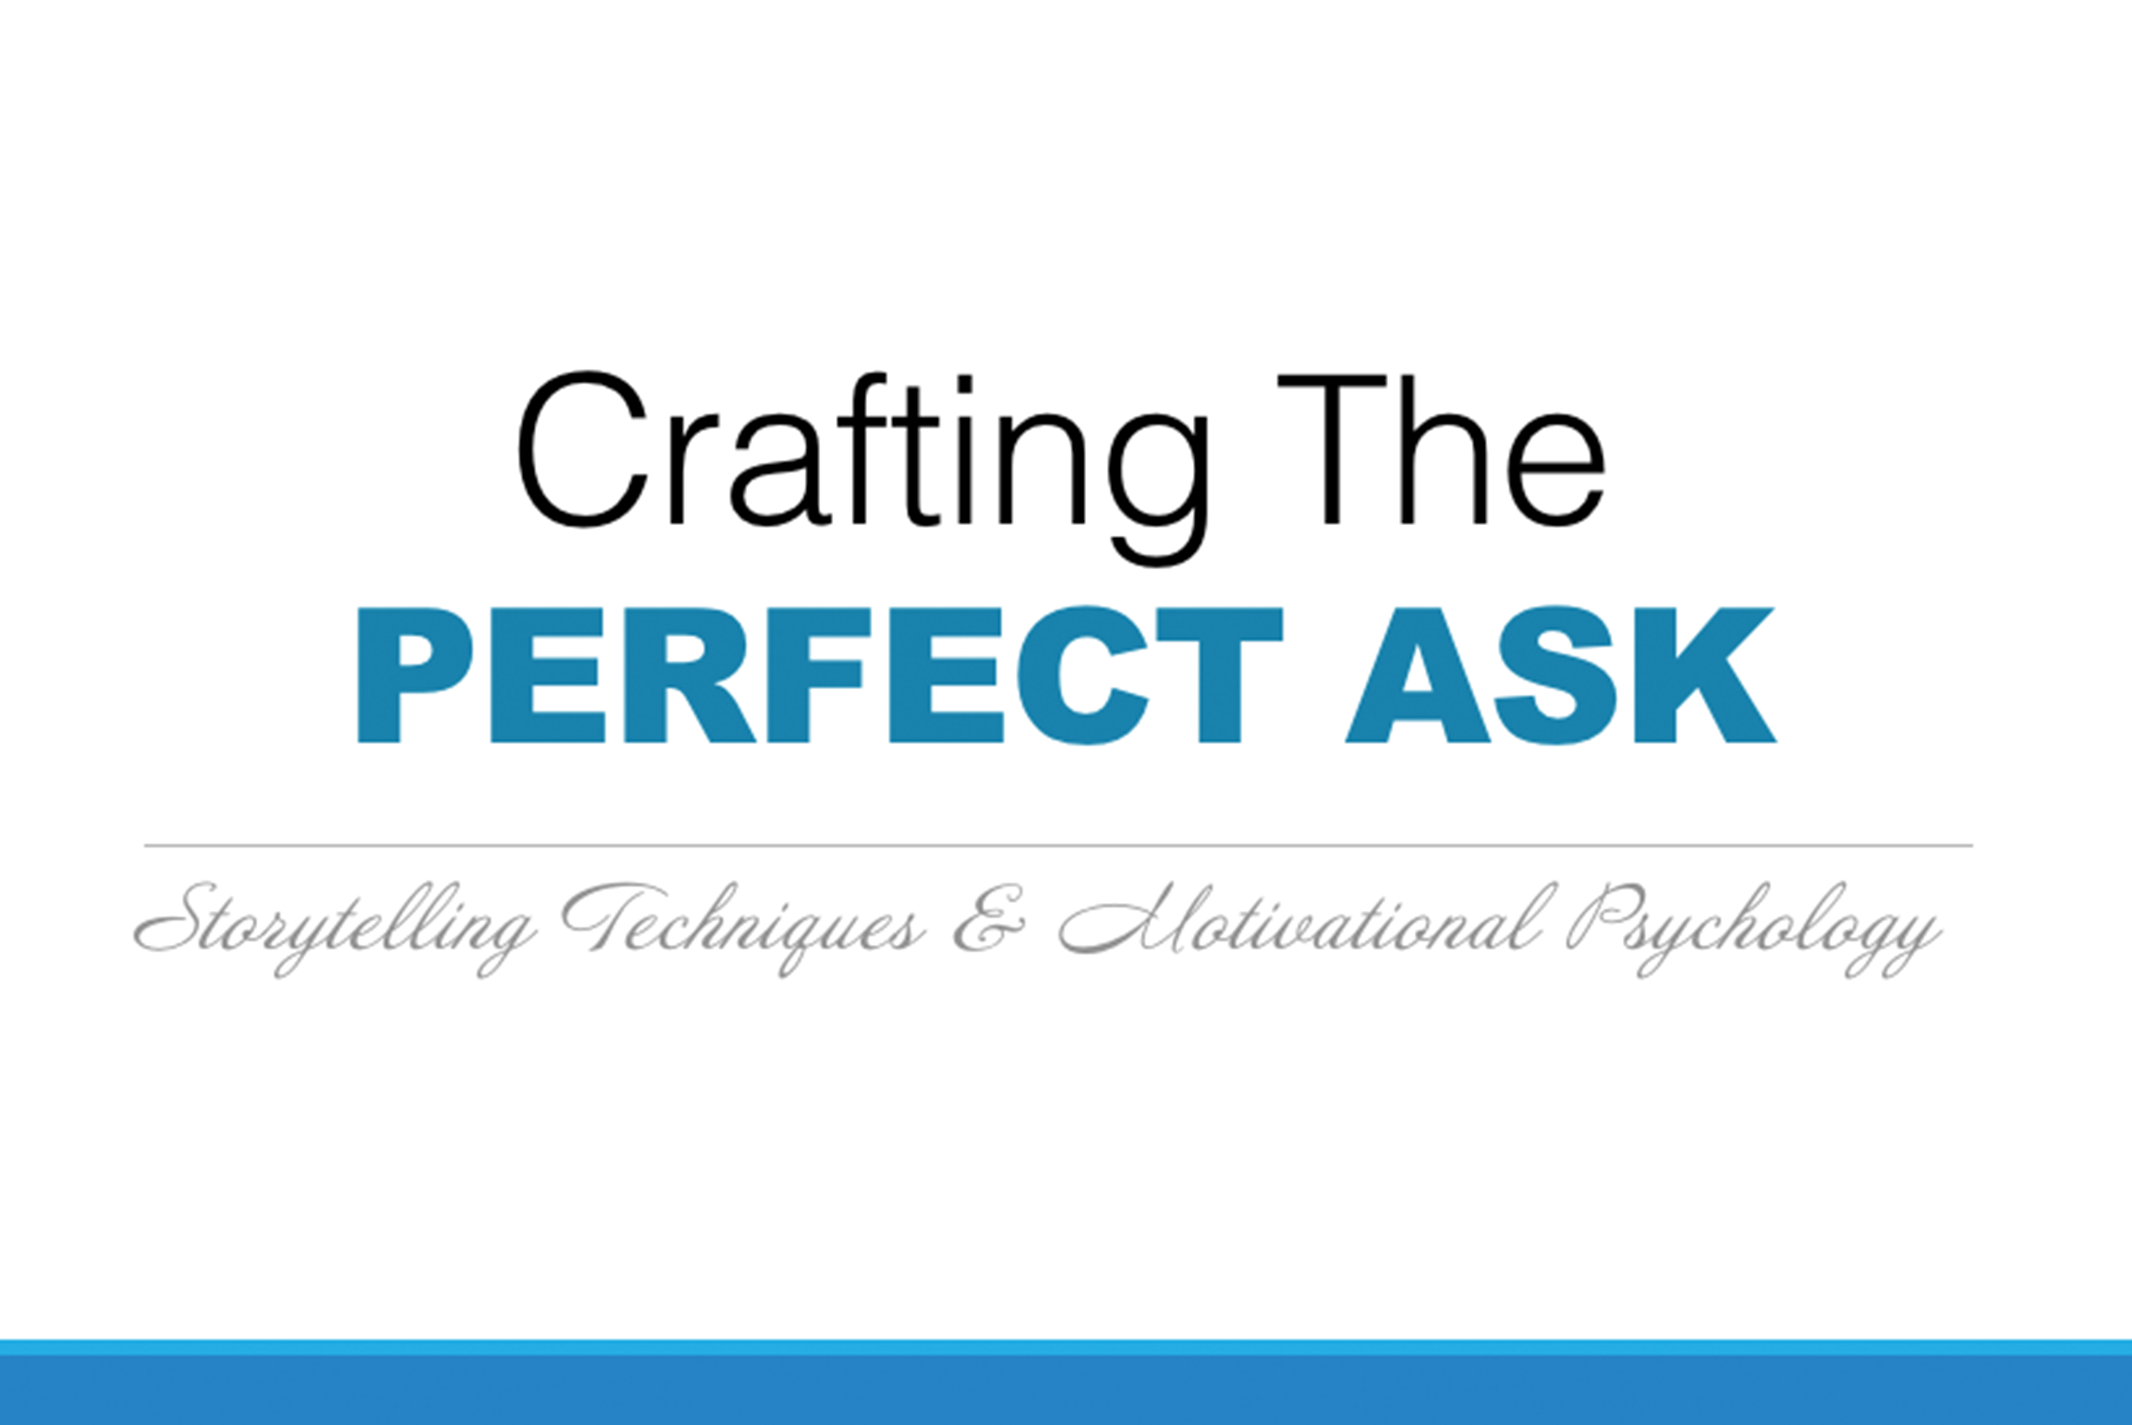 Craft Perfect Ask Storytelling Workshop